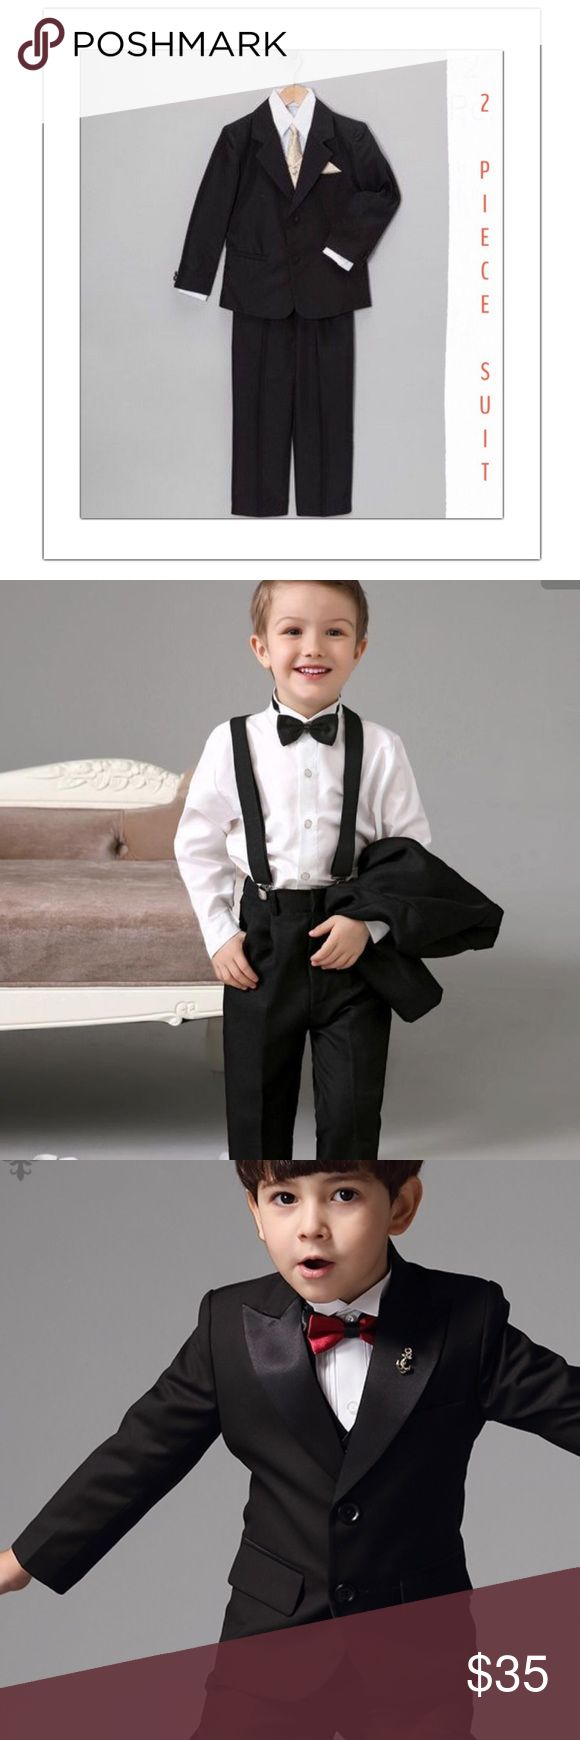 black . single . breasted . Suit Wow! Dress your little man in this 2 pc black single breasted suit. Jacket and pants. Pairs great with denim, white dress shirt, neck tie, bow tie, suspenders. You name it! What a great staple piece for a special occasion and that family on the go. Where the dress pants with a nice sweater for a dinner. Yes! Wow! 3 buttons on the jacket with 2 pockets in front. The pants have an elastic waist band in the back with 2 side pockets. Button to fasten pants. Size…